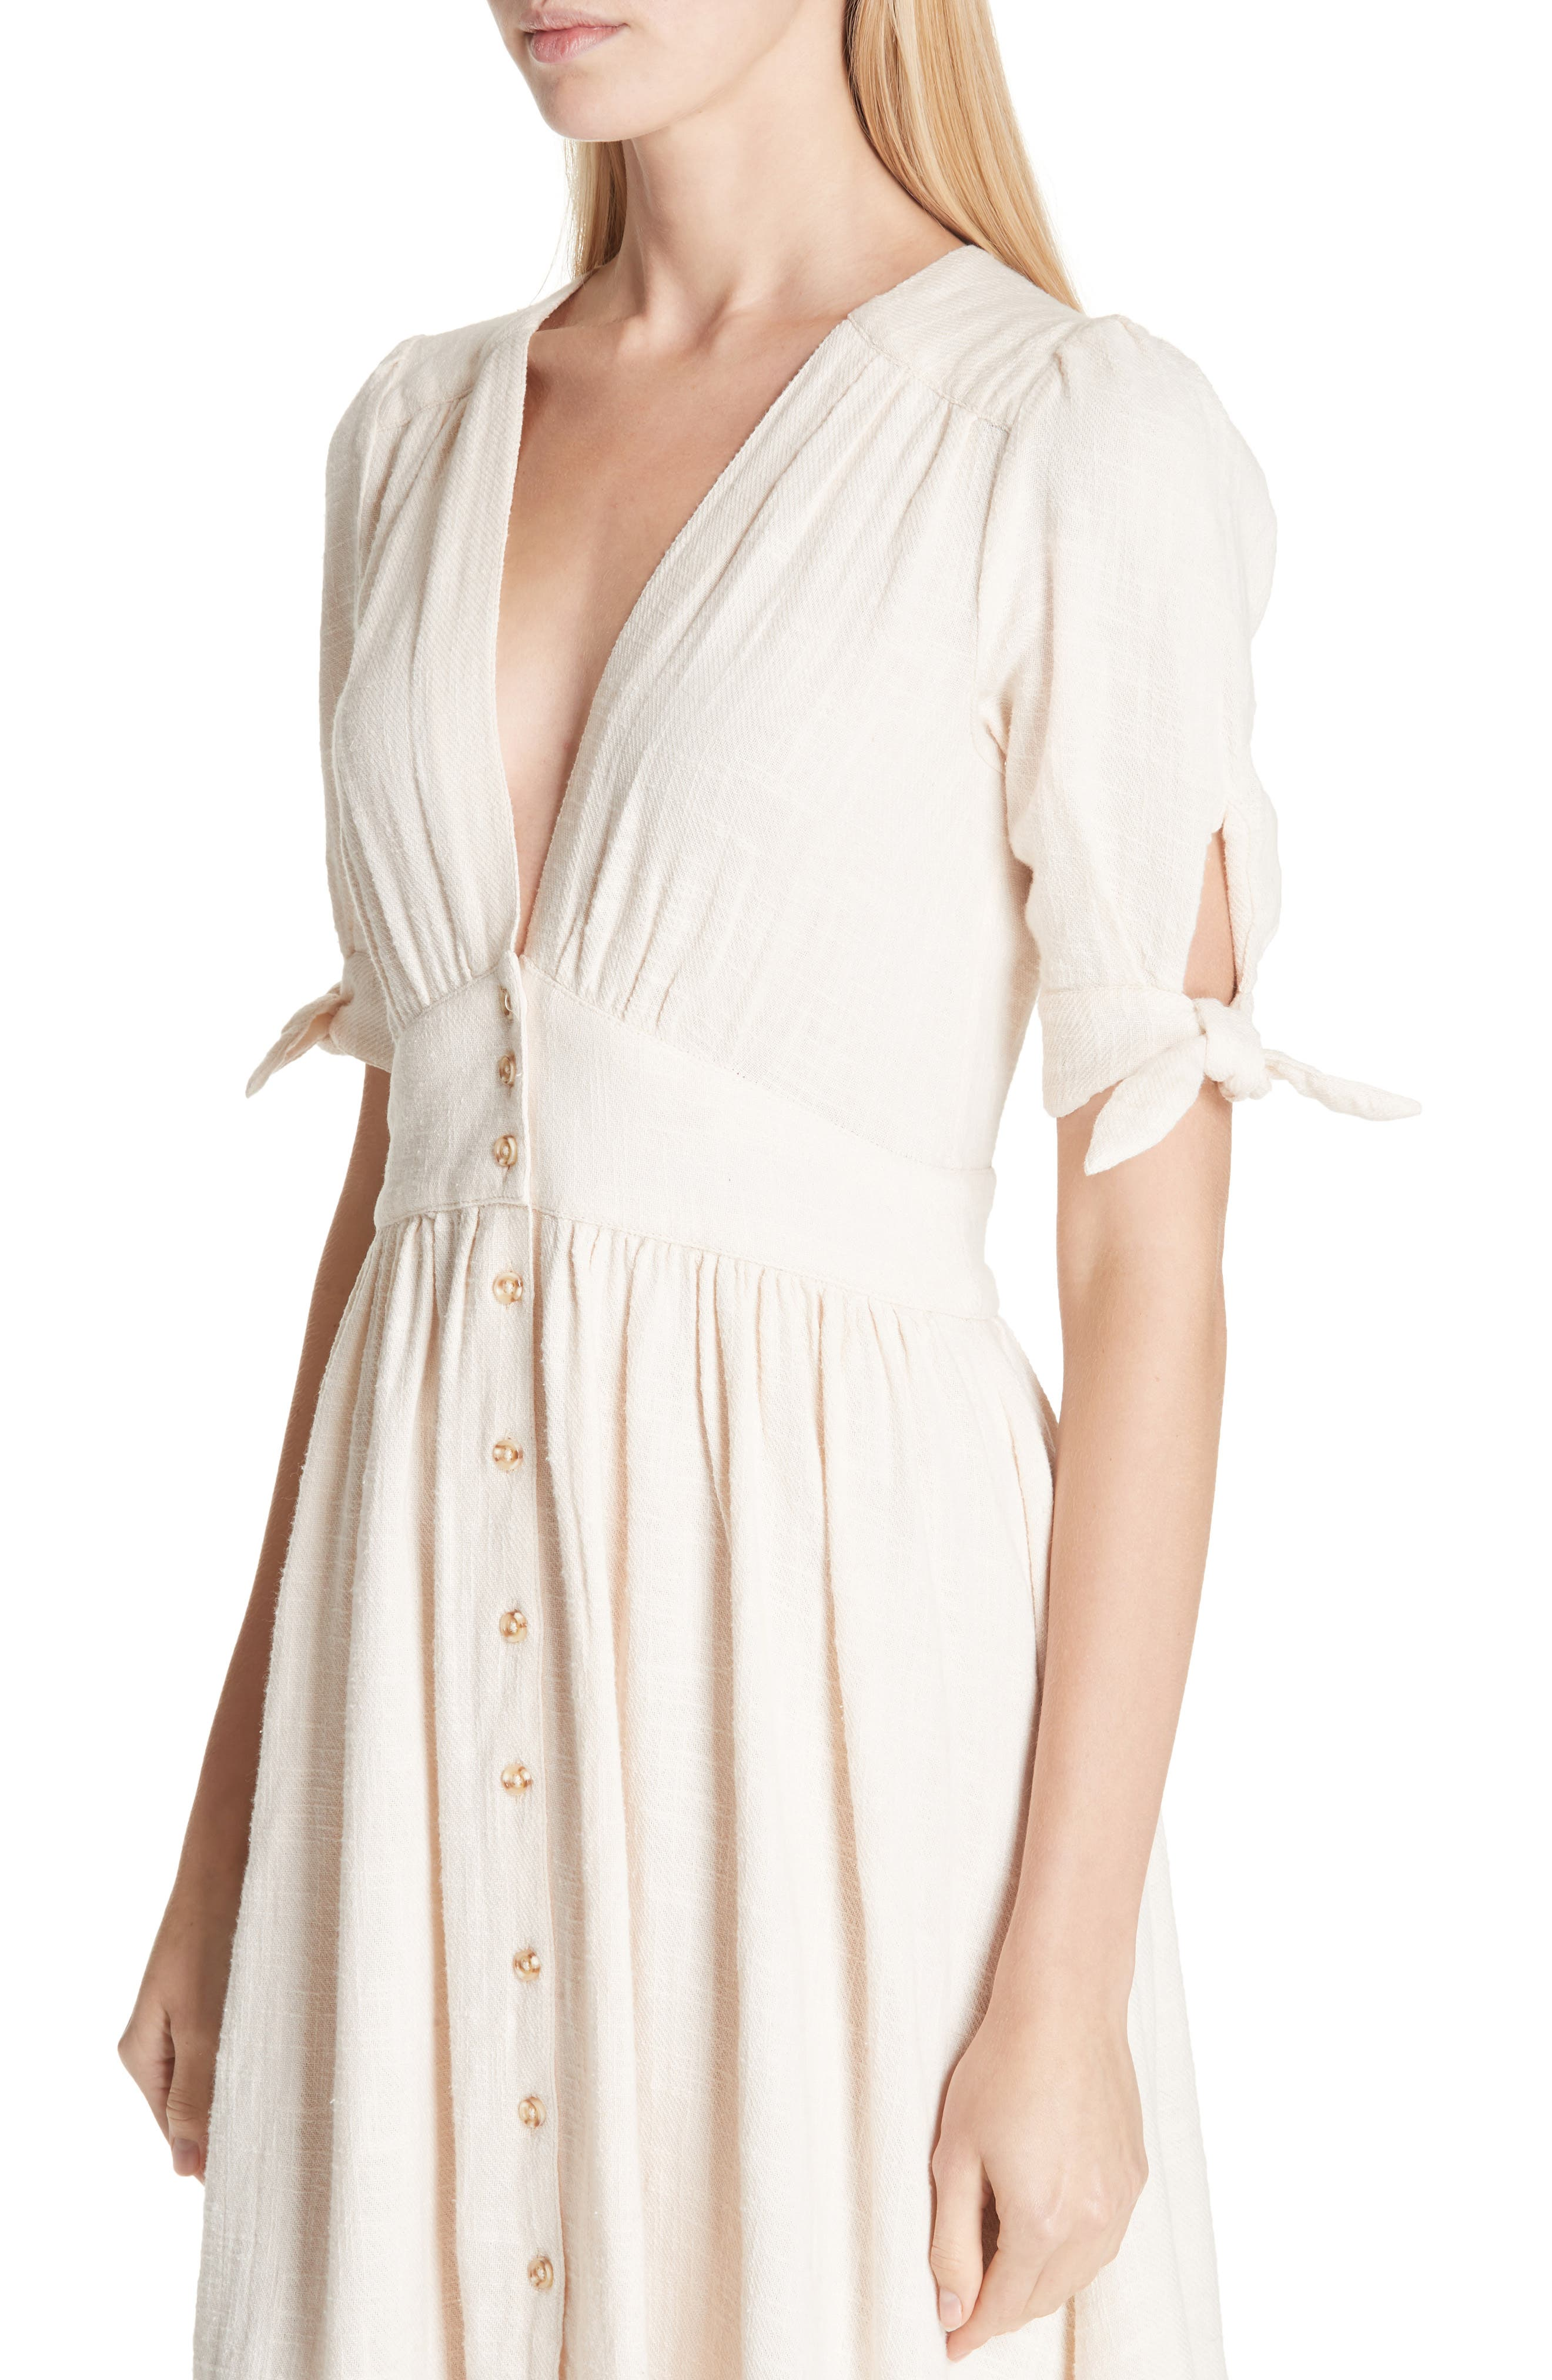 FREE PEOPLE, Love of My Life Midi Dress, Alternate thumbnail 5, color, IVORY